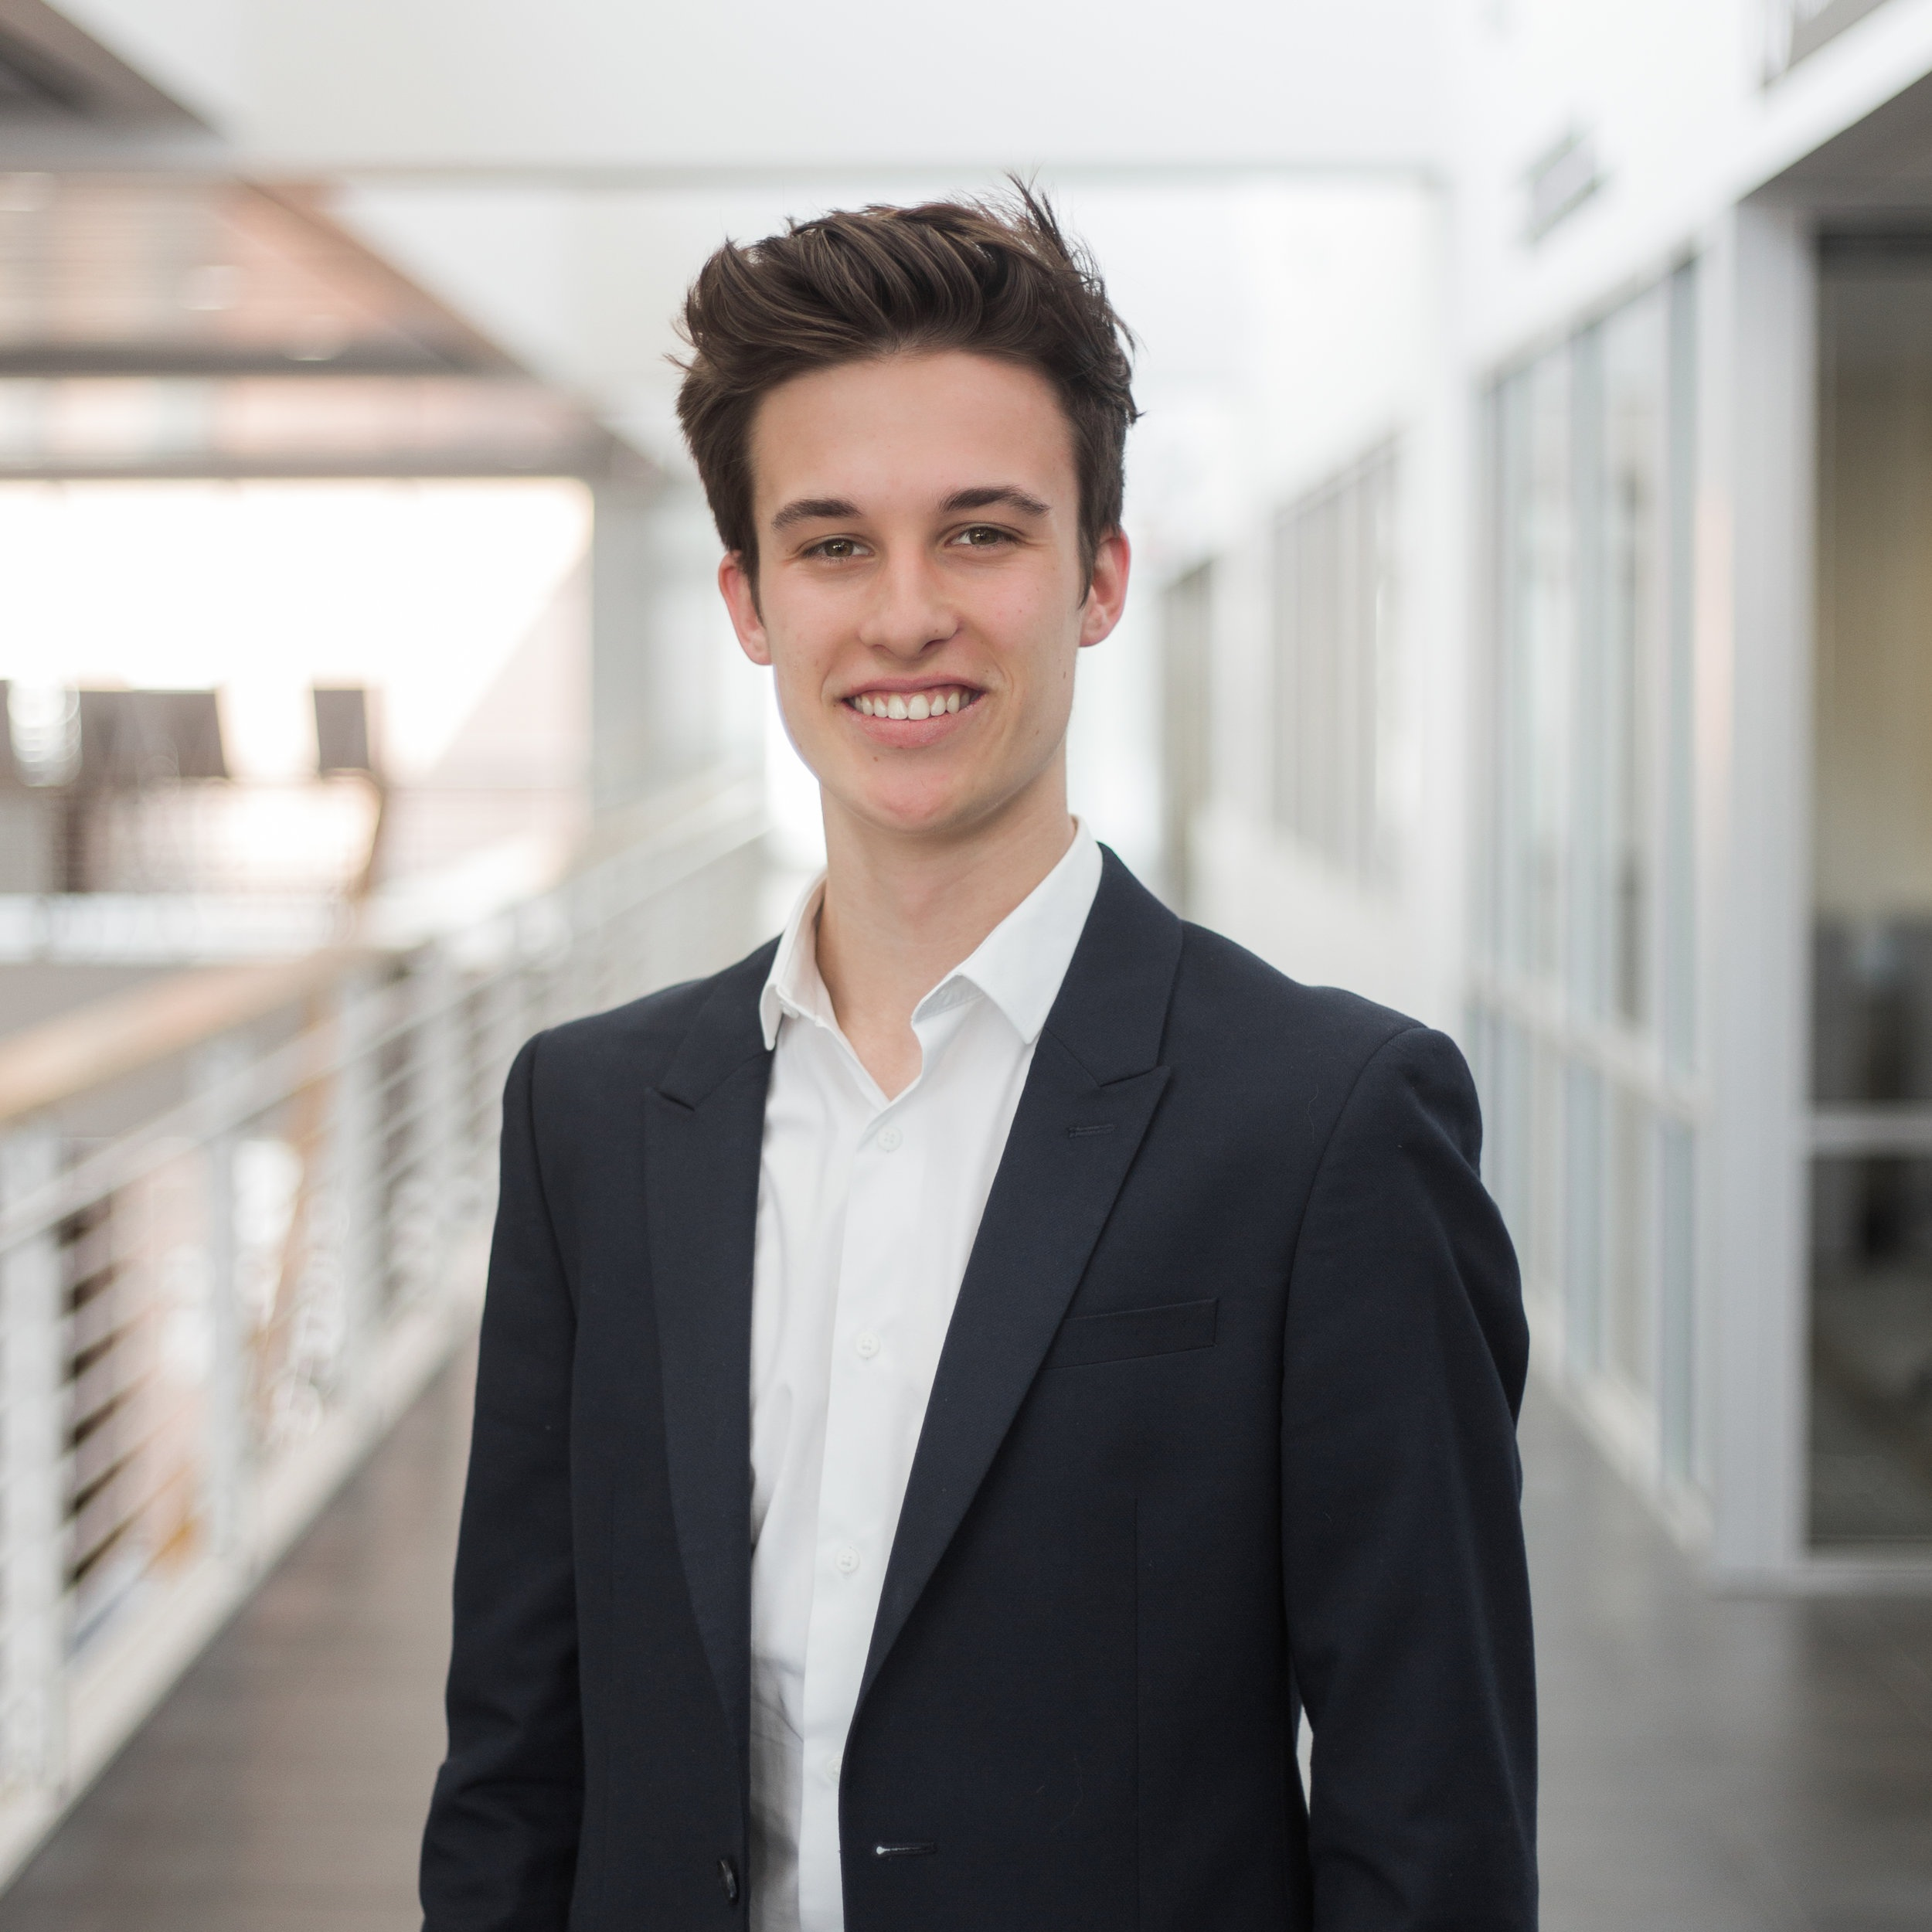 Ian Smith - AnalystBSB '20, Finance and Accounting